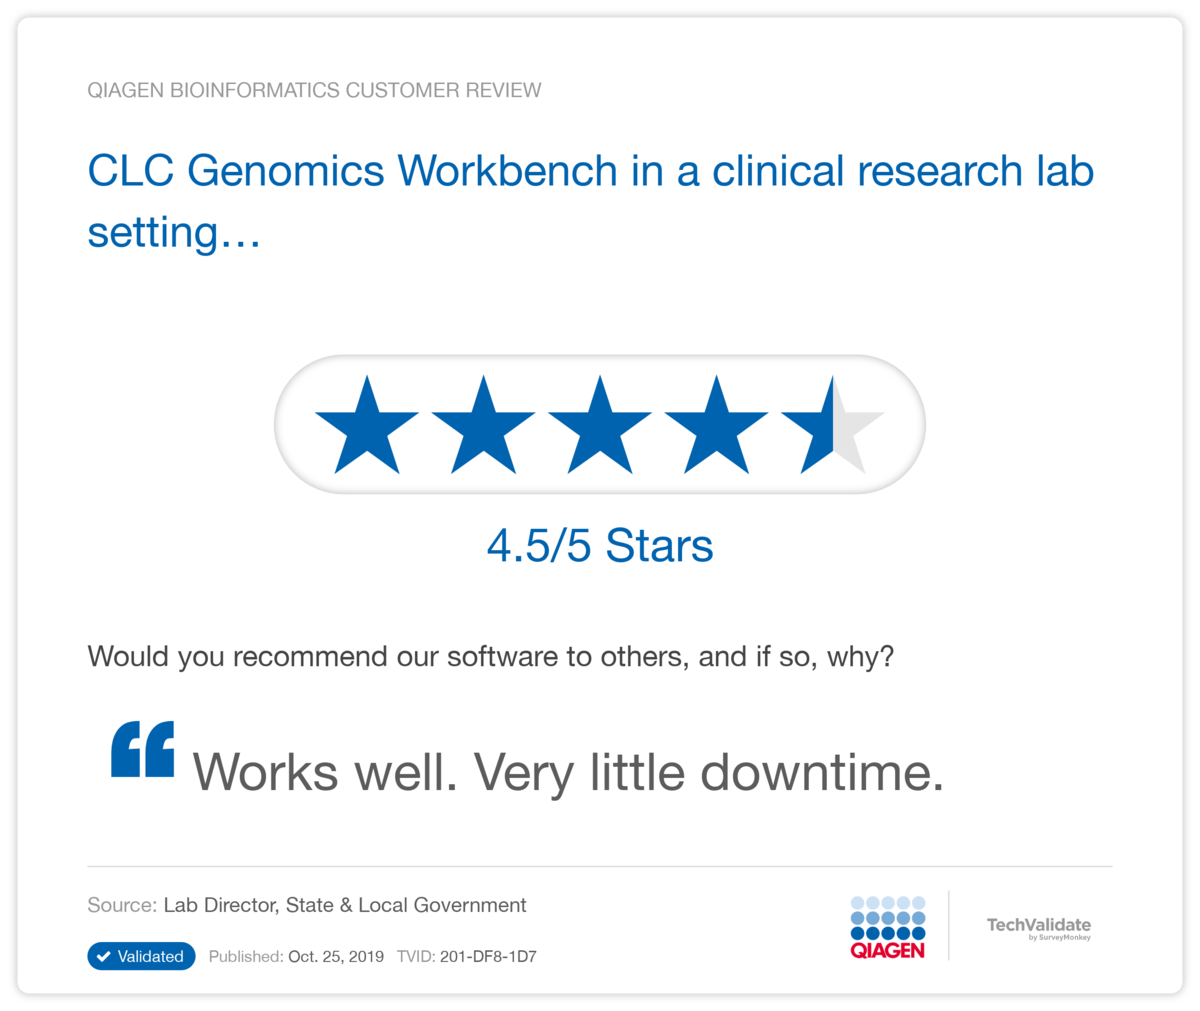 CLC Genomics Workbench in a clinical research lab setting...